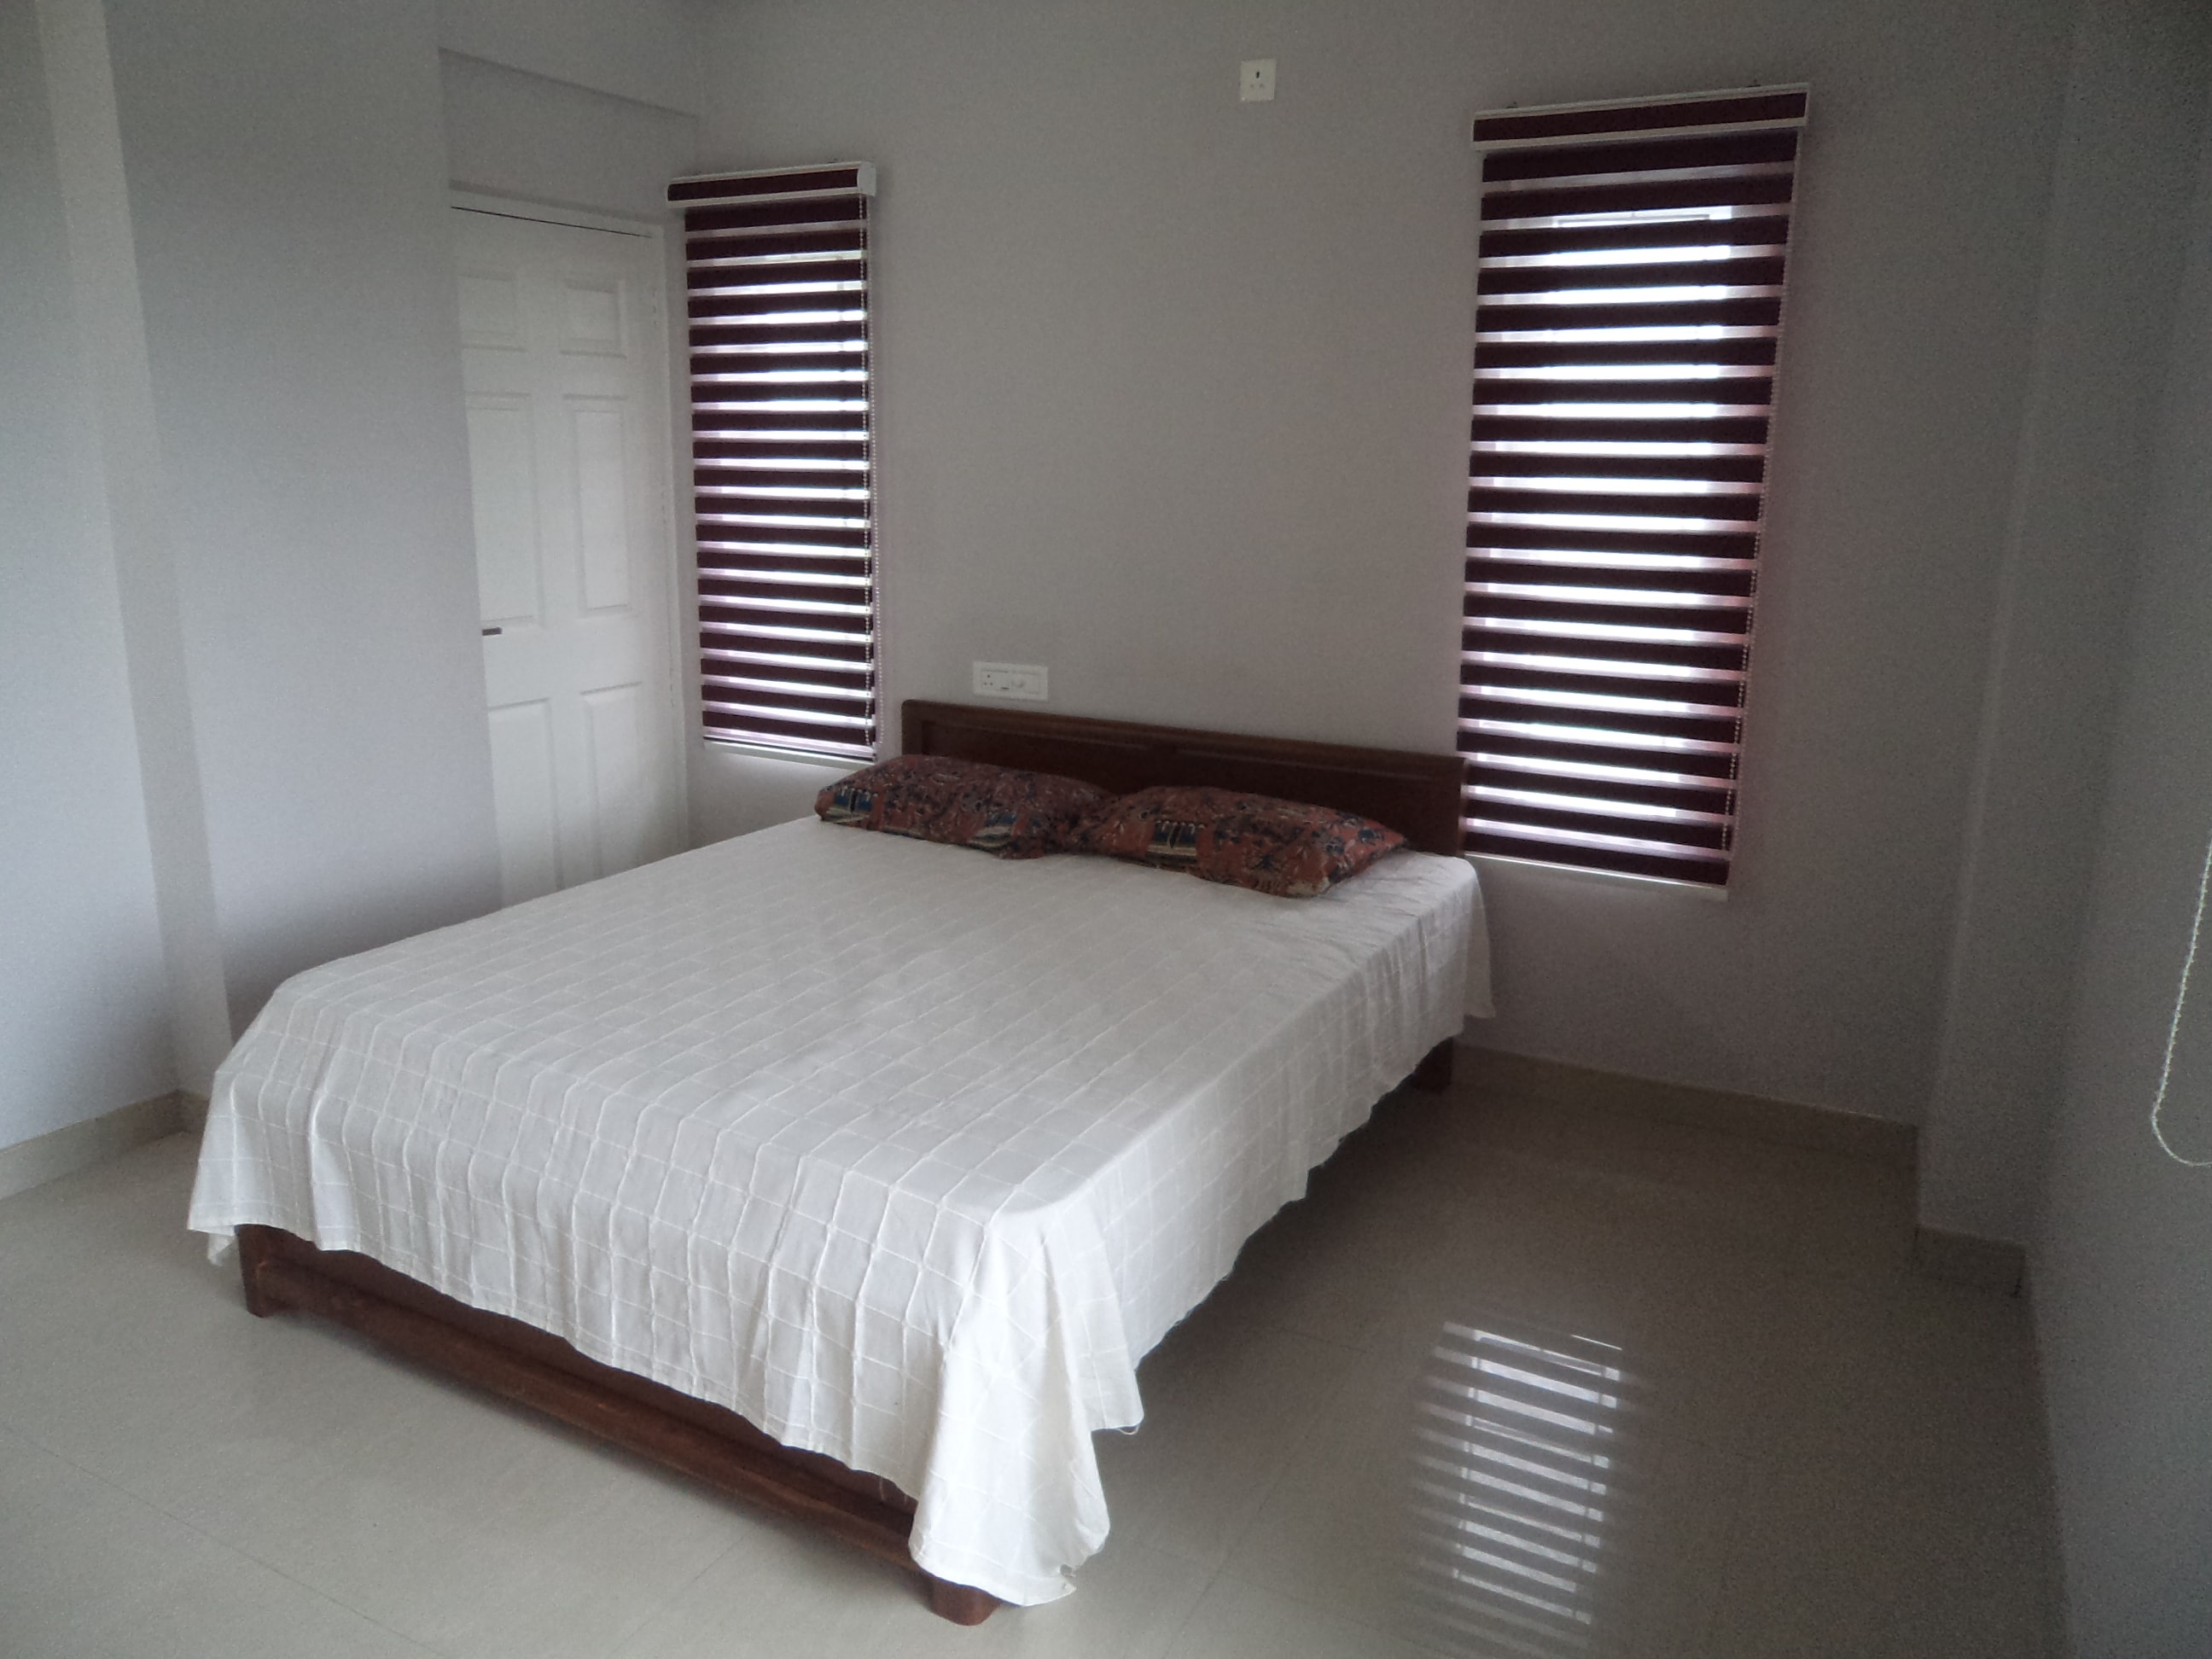 3 bedroom furnished flat for ome month rent in kottayam